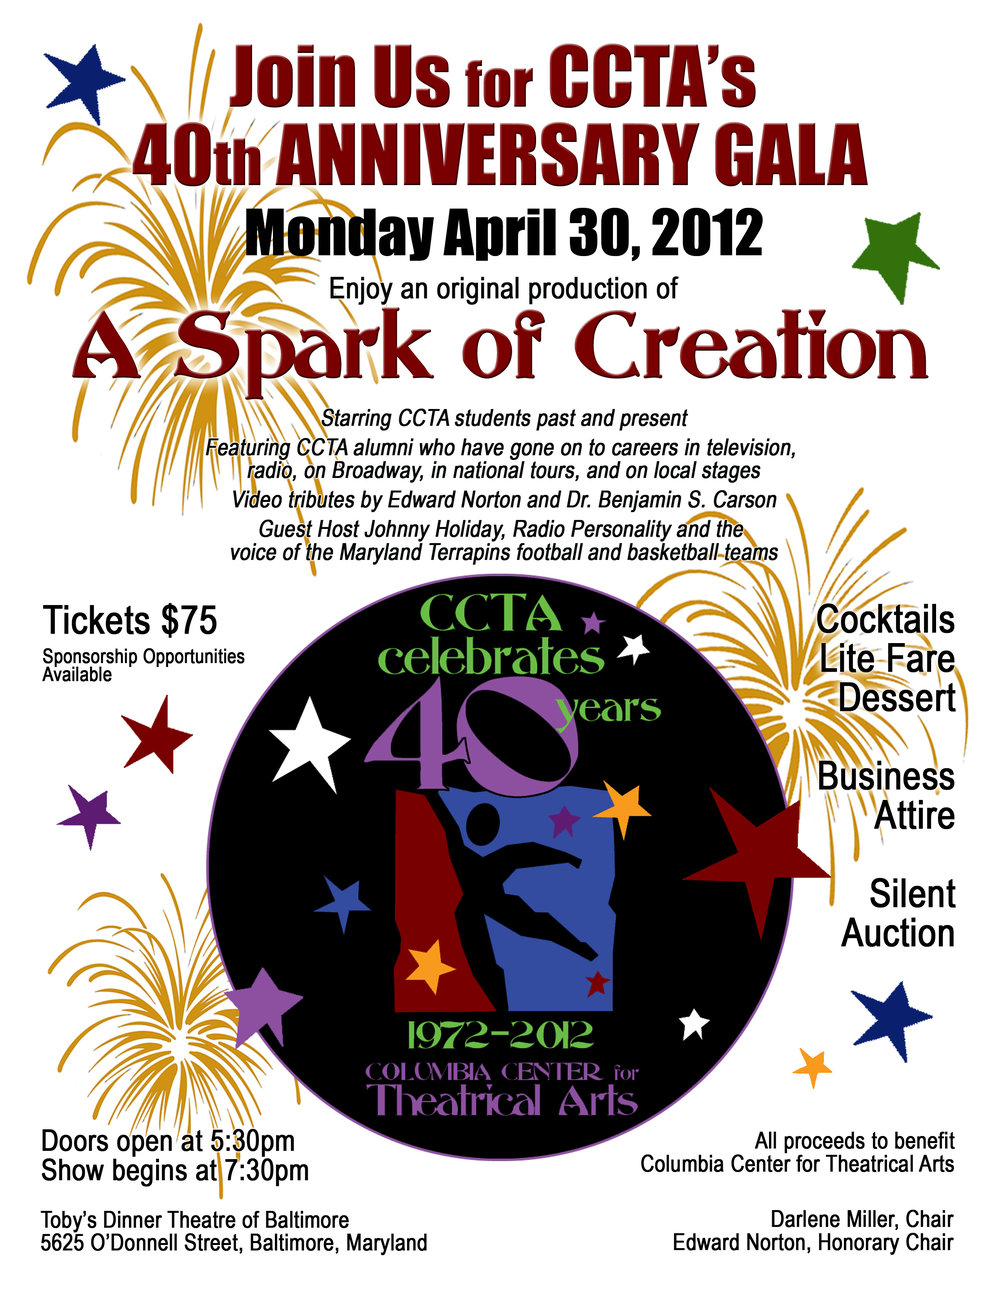 Invitation Flyer - CCTA Spark of Creation 40th Anniversary copy.jpg